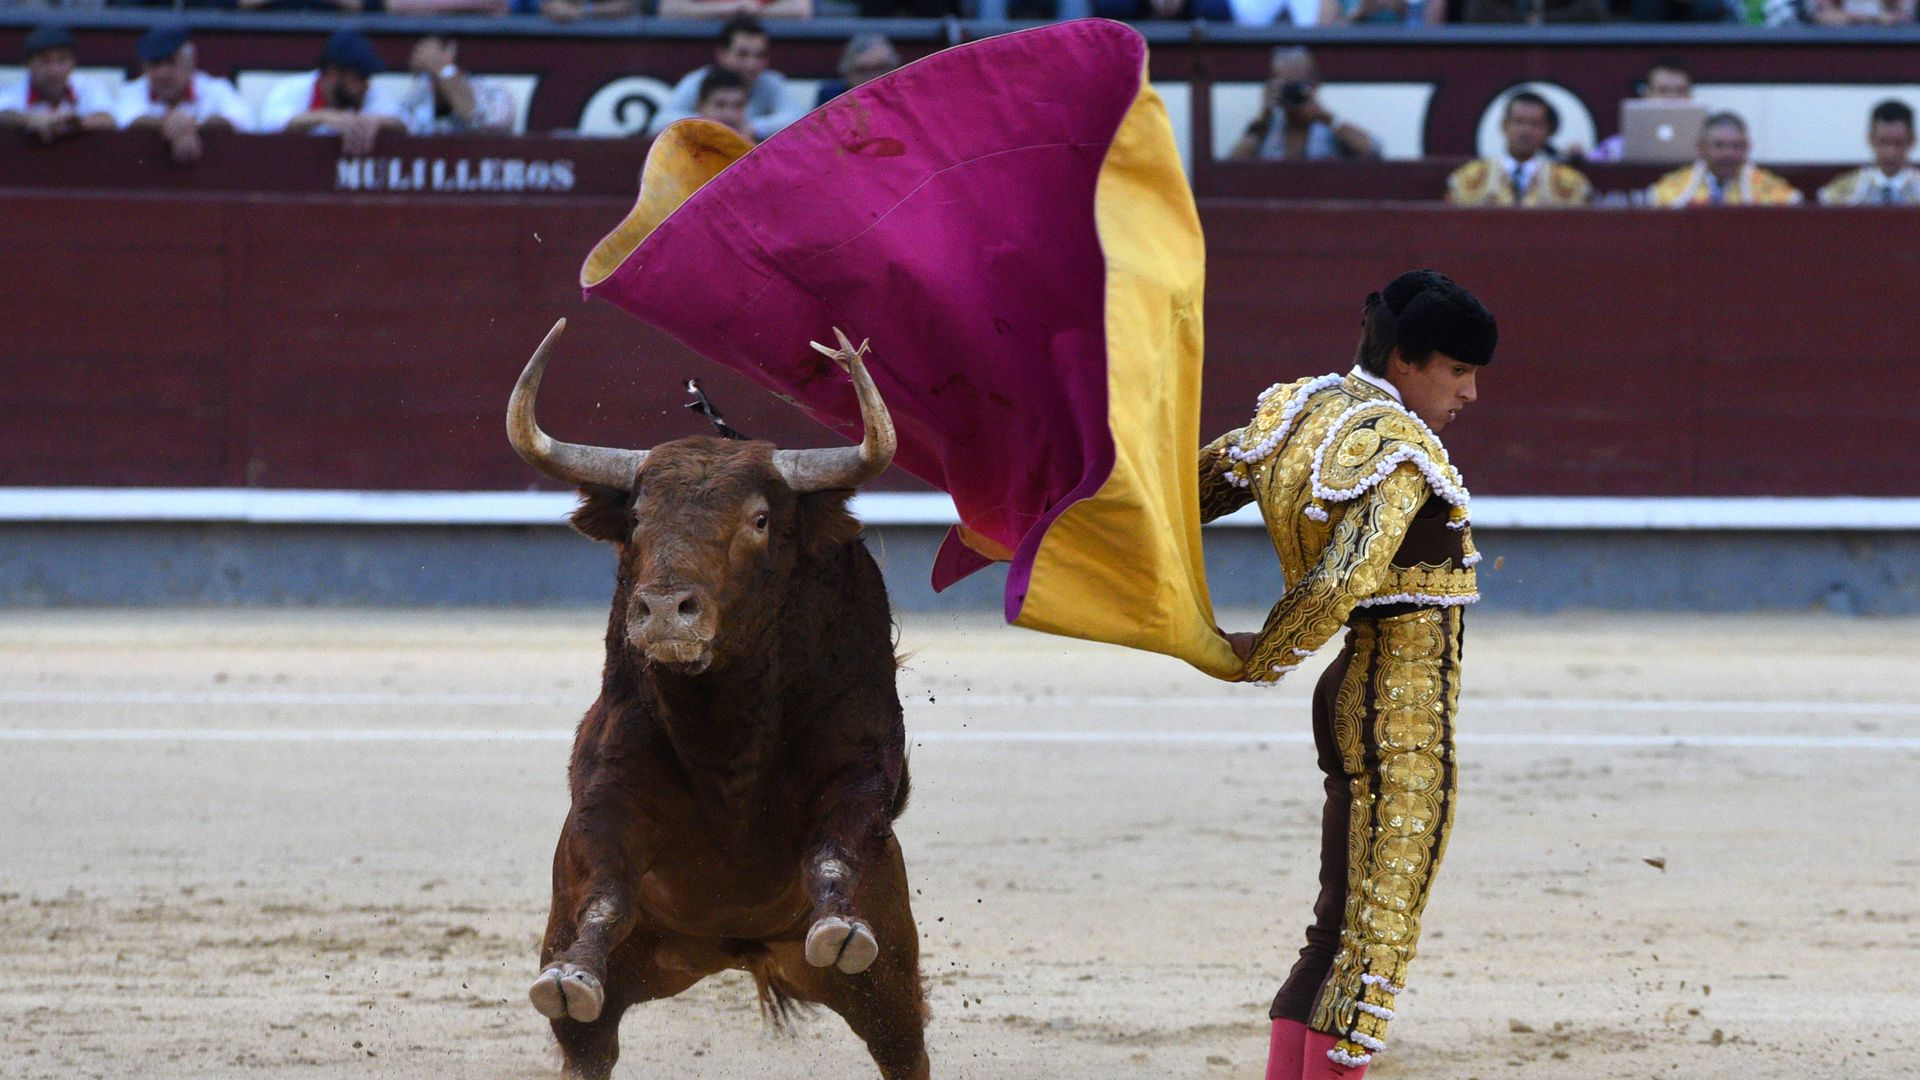 Bullfighting takes the electoral ring in Madrid, after Spain's fractured general election